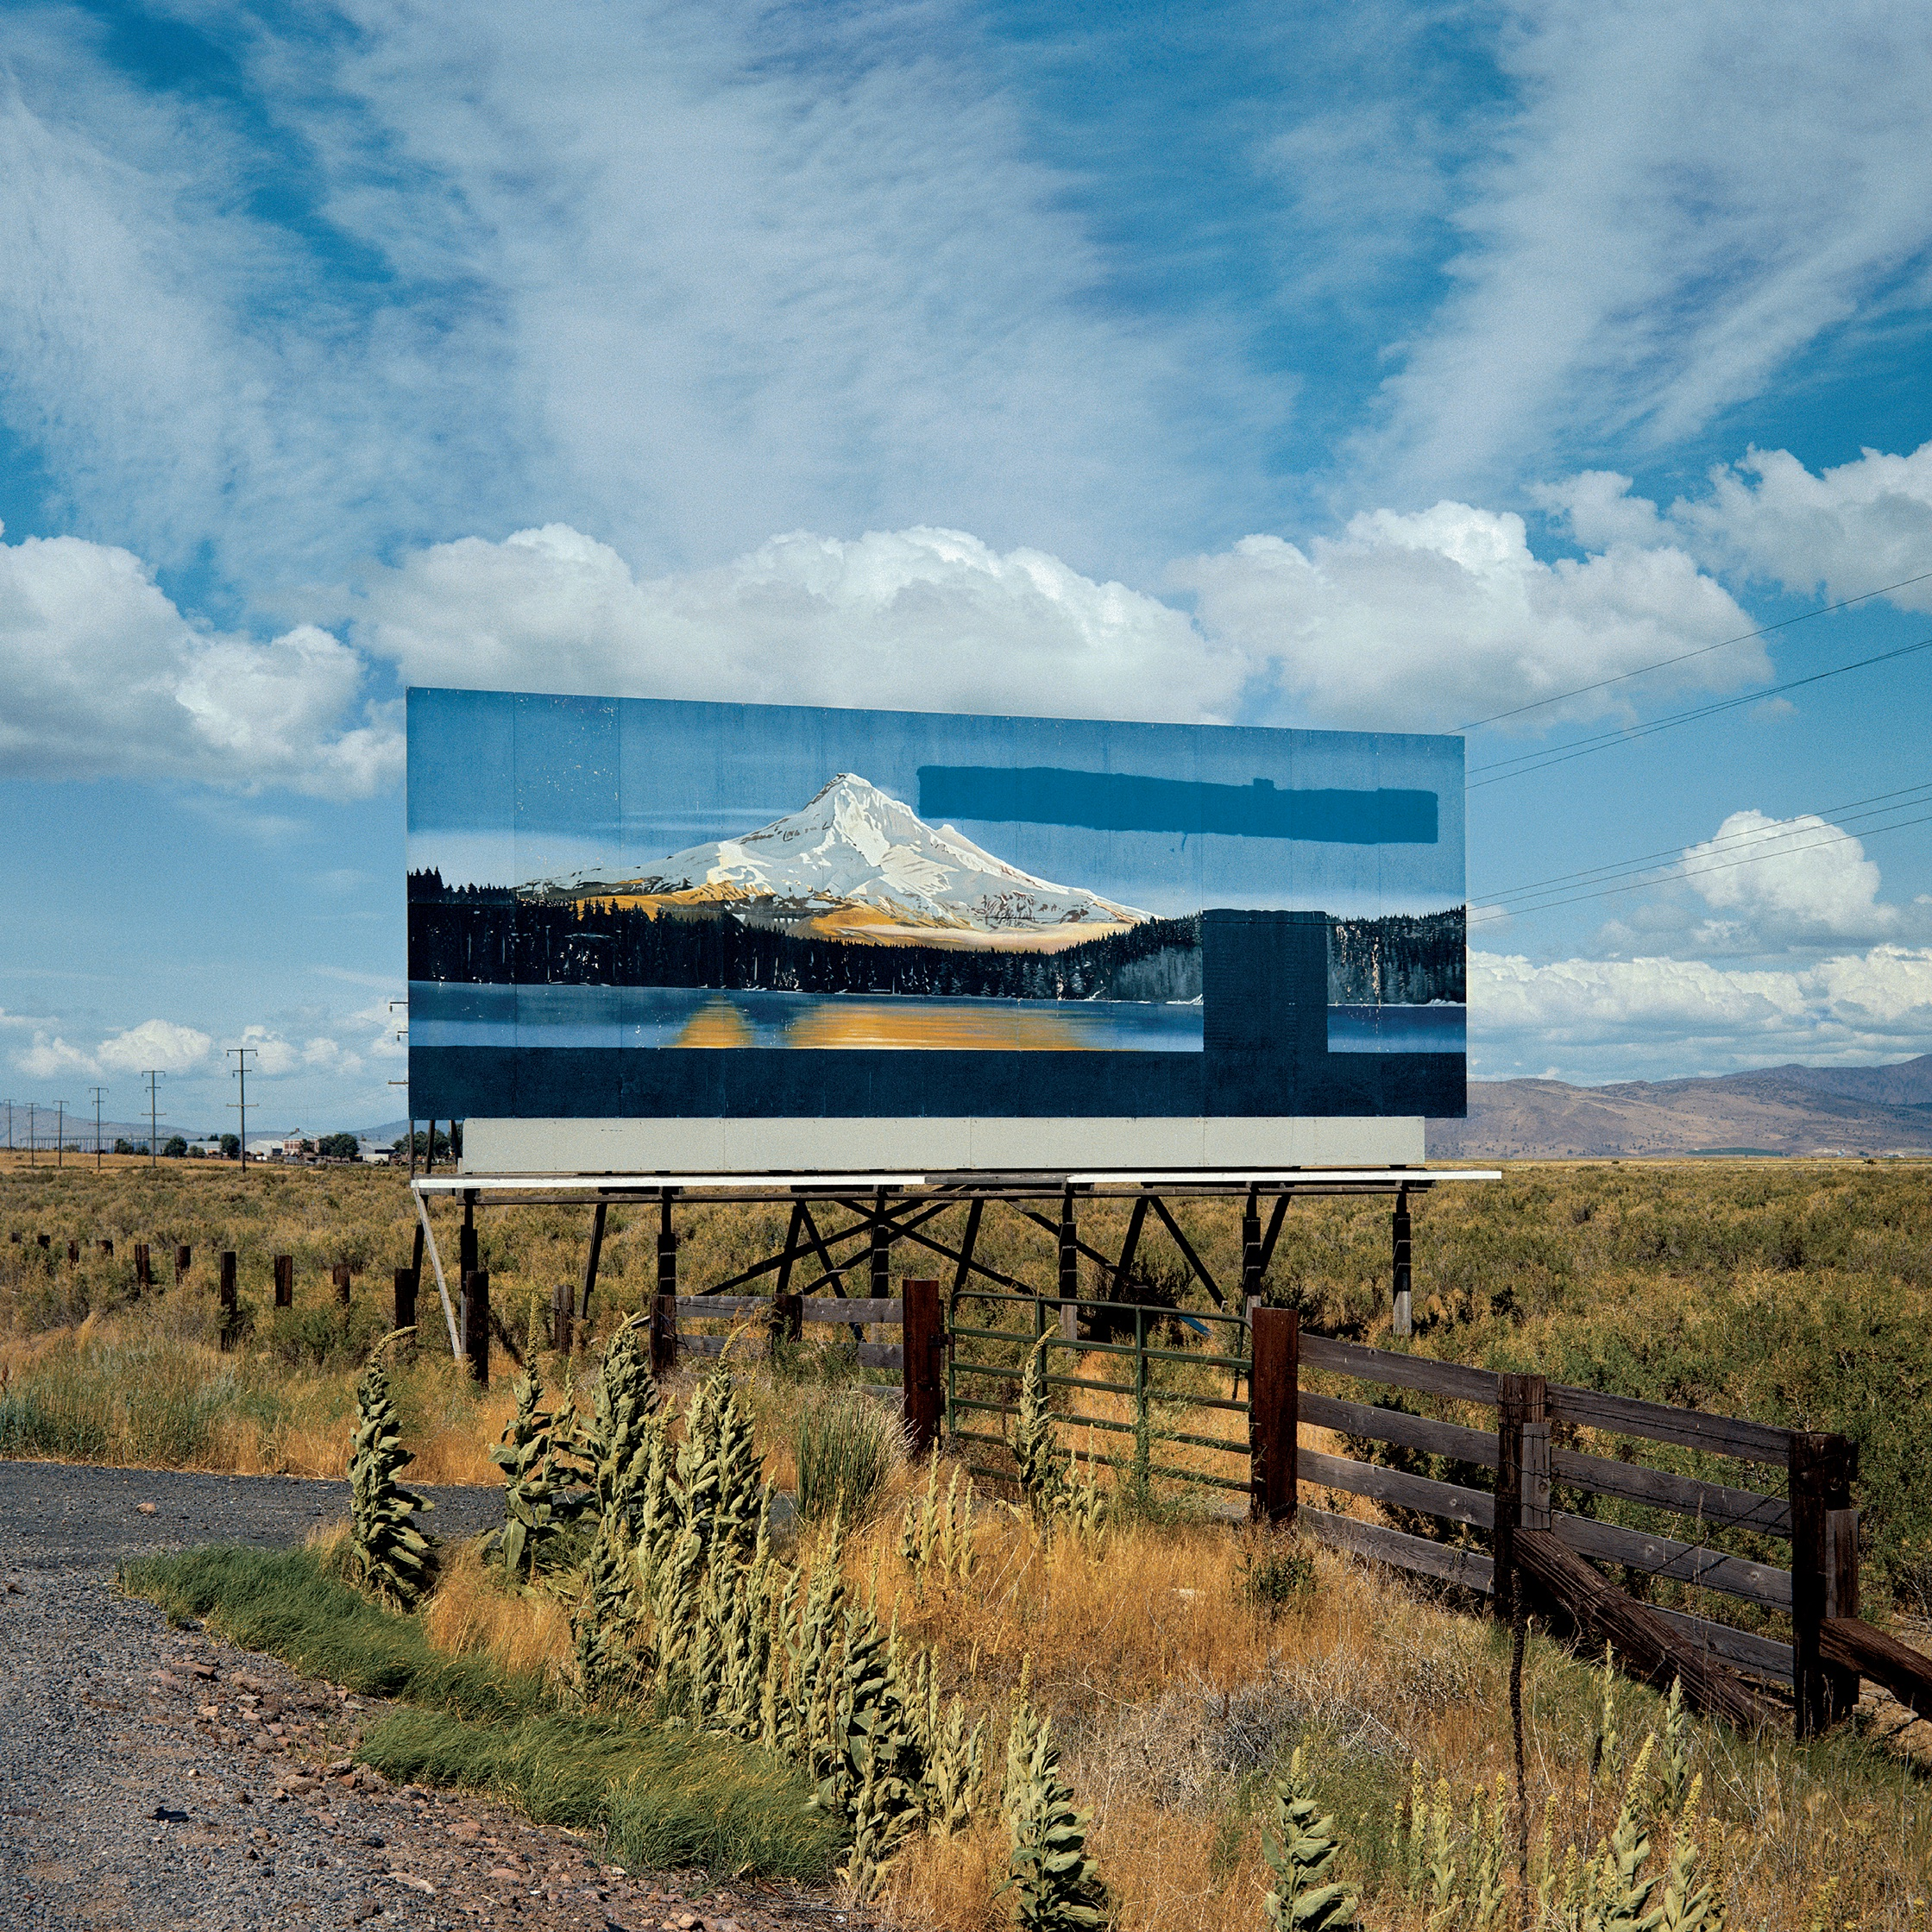 Image of a billboard by a roadside. The billboard depicts an image of a mountain in the distance with clouds. The color of the billboard mirrors that of the sky and clouds behind the billboard. There is a brown fence running along the side of the road, with weeds, grasses, and shrubs coming right up the the edge of the gravel road, which is seen in the lower left-hand corner of the image.